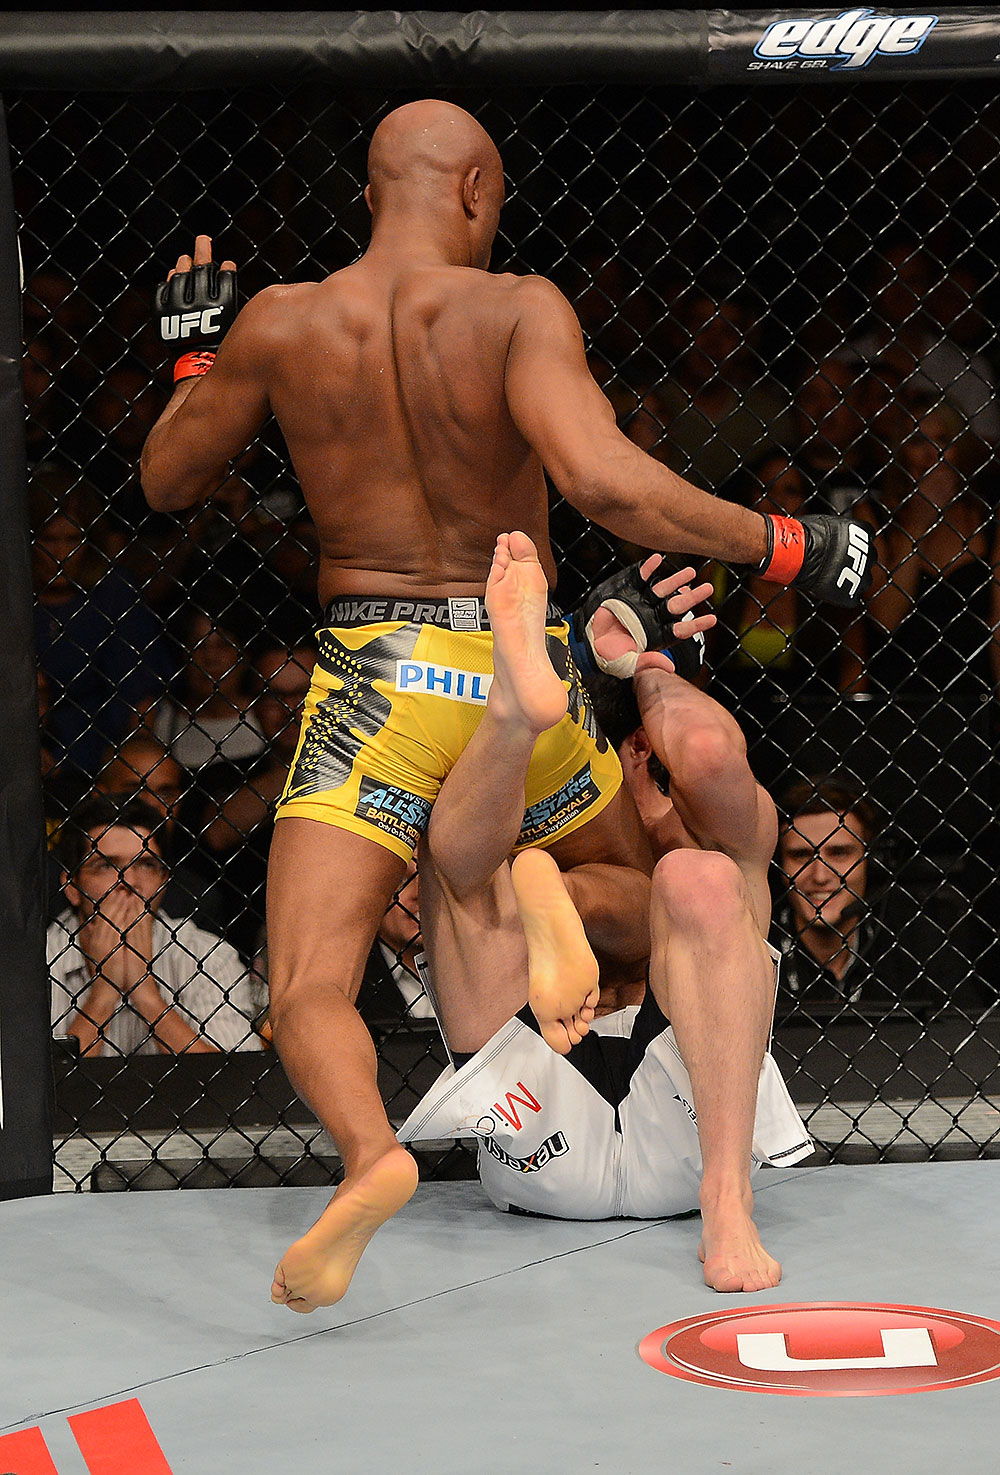 Anderson Silva knees Chael Sonnen during their rematch at UFC 148